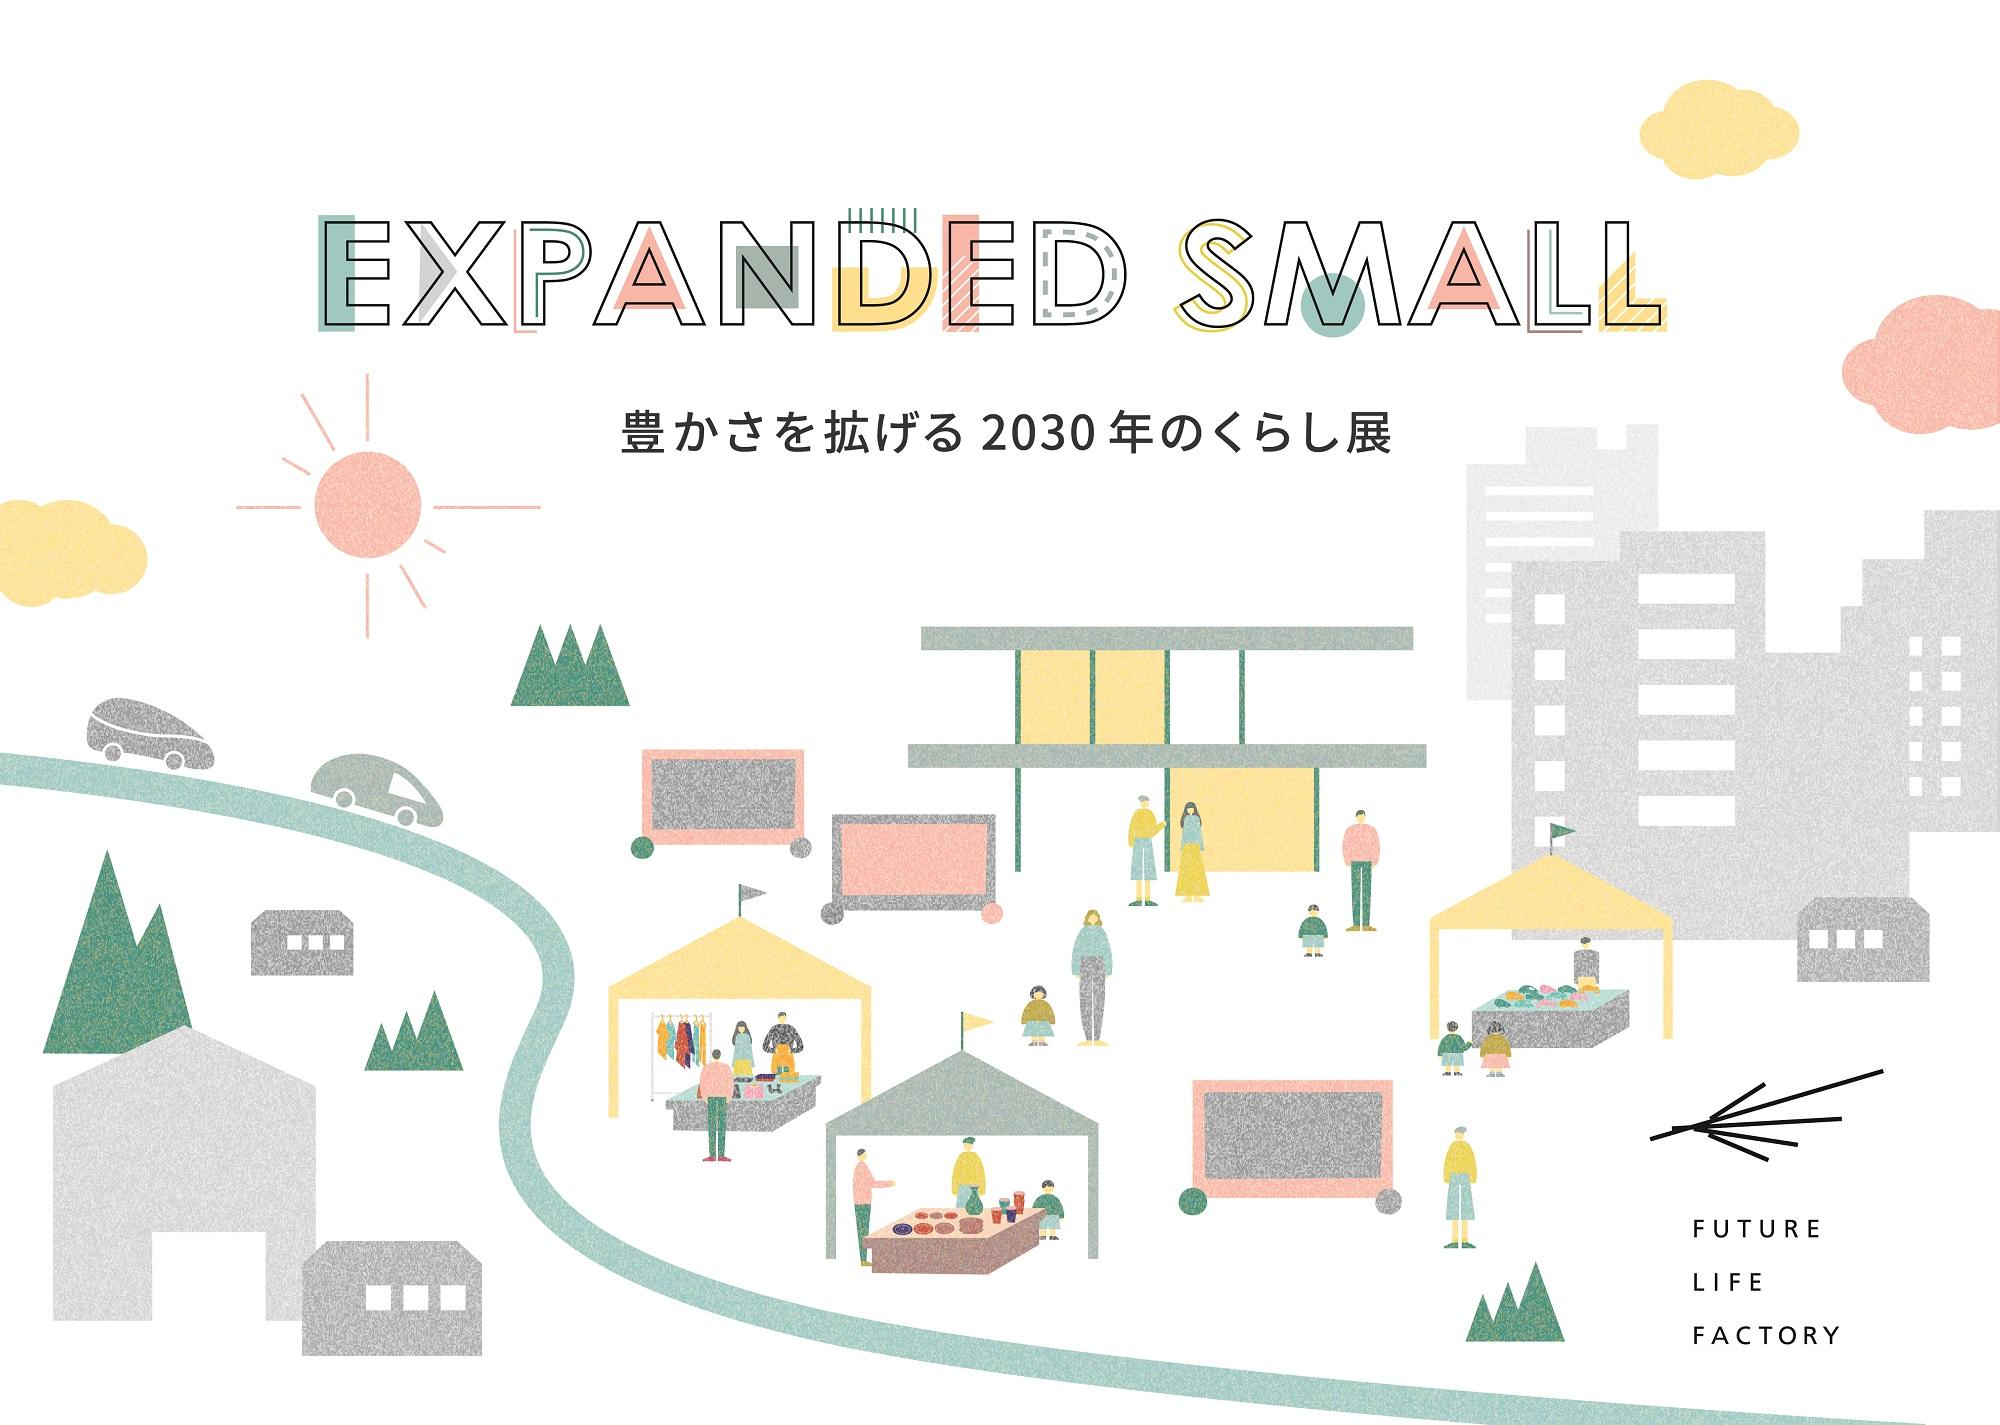 「EXPANDED SMALL-豊かさを拡げる2030年のくらし展-」イメージ